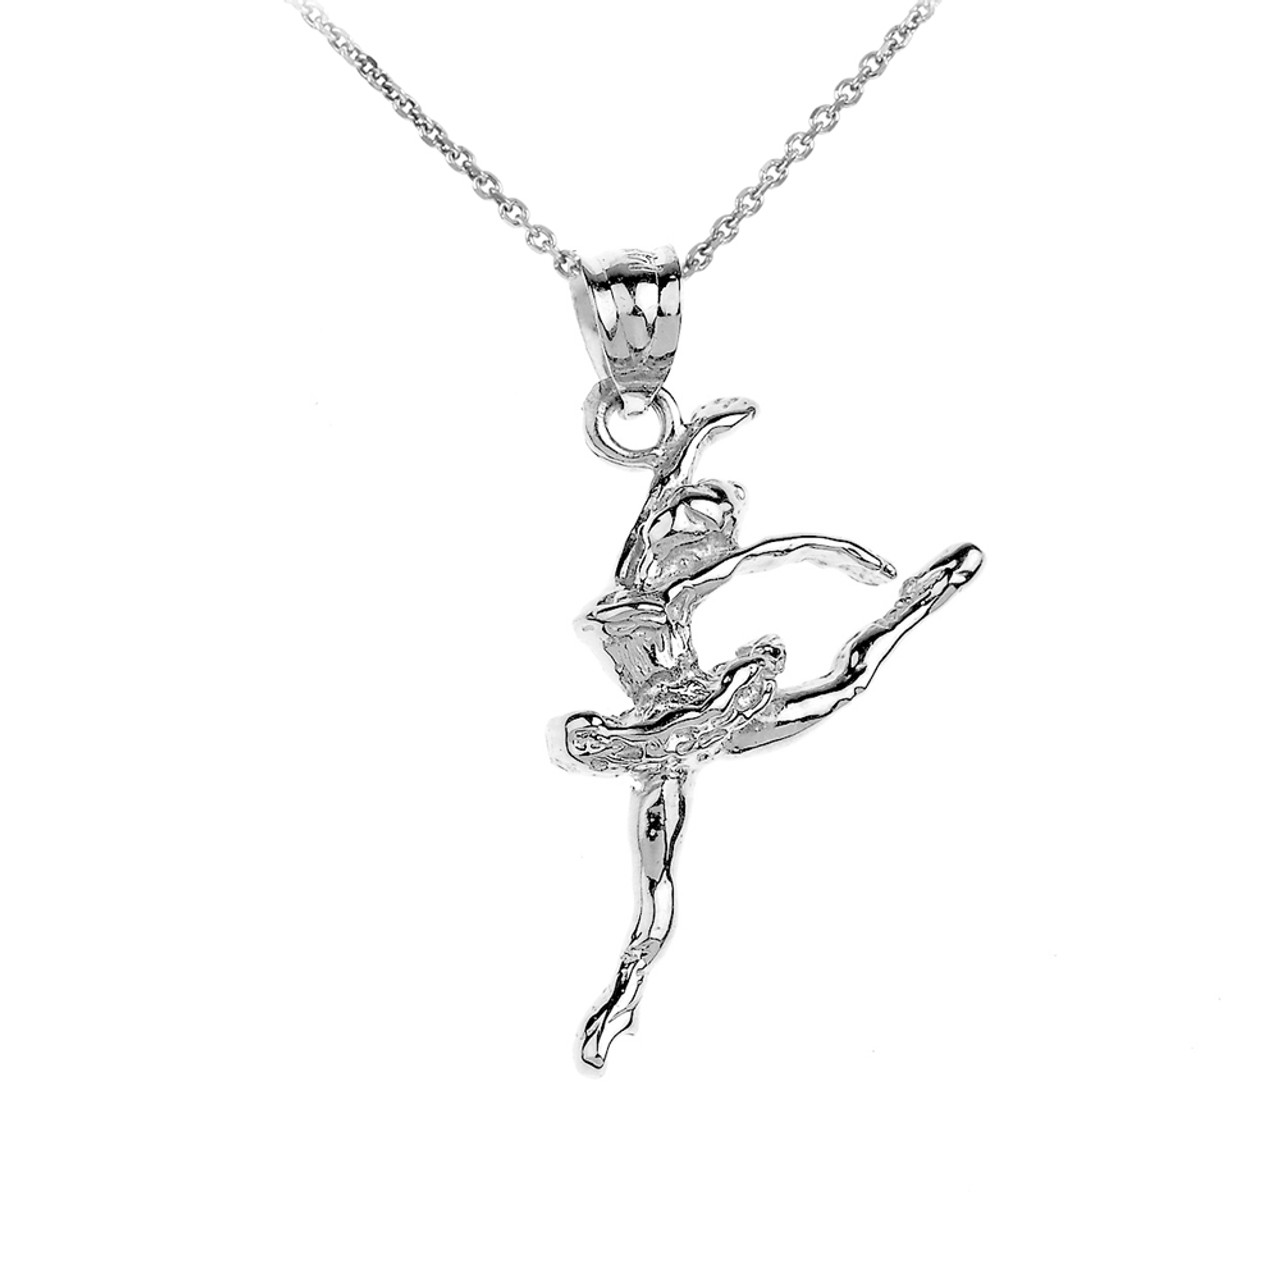 Sterling silver ballet dancer charm pendant necklace 925 sterling silver ballet dancer charm pendant necklace mozeypictures Image collections